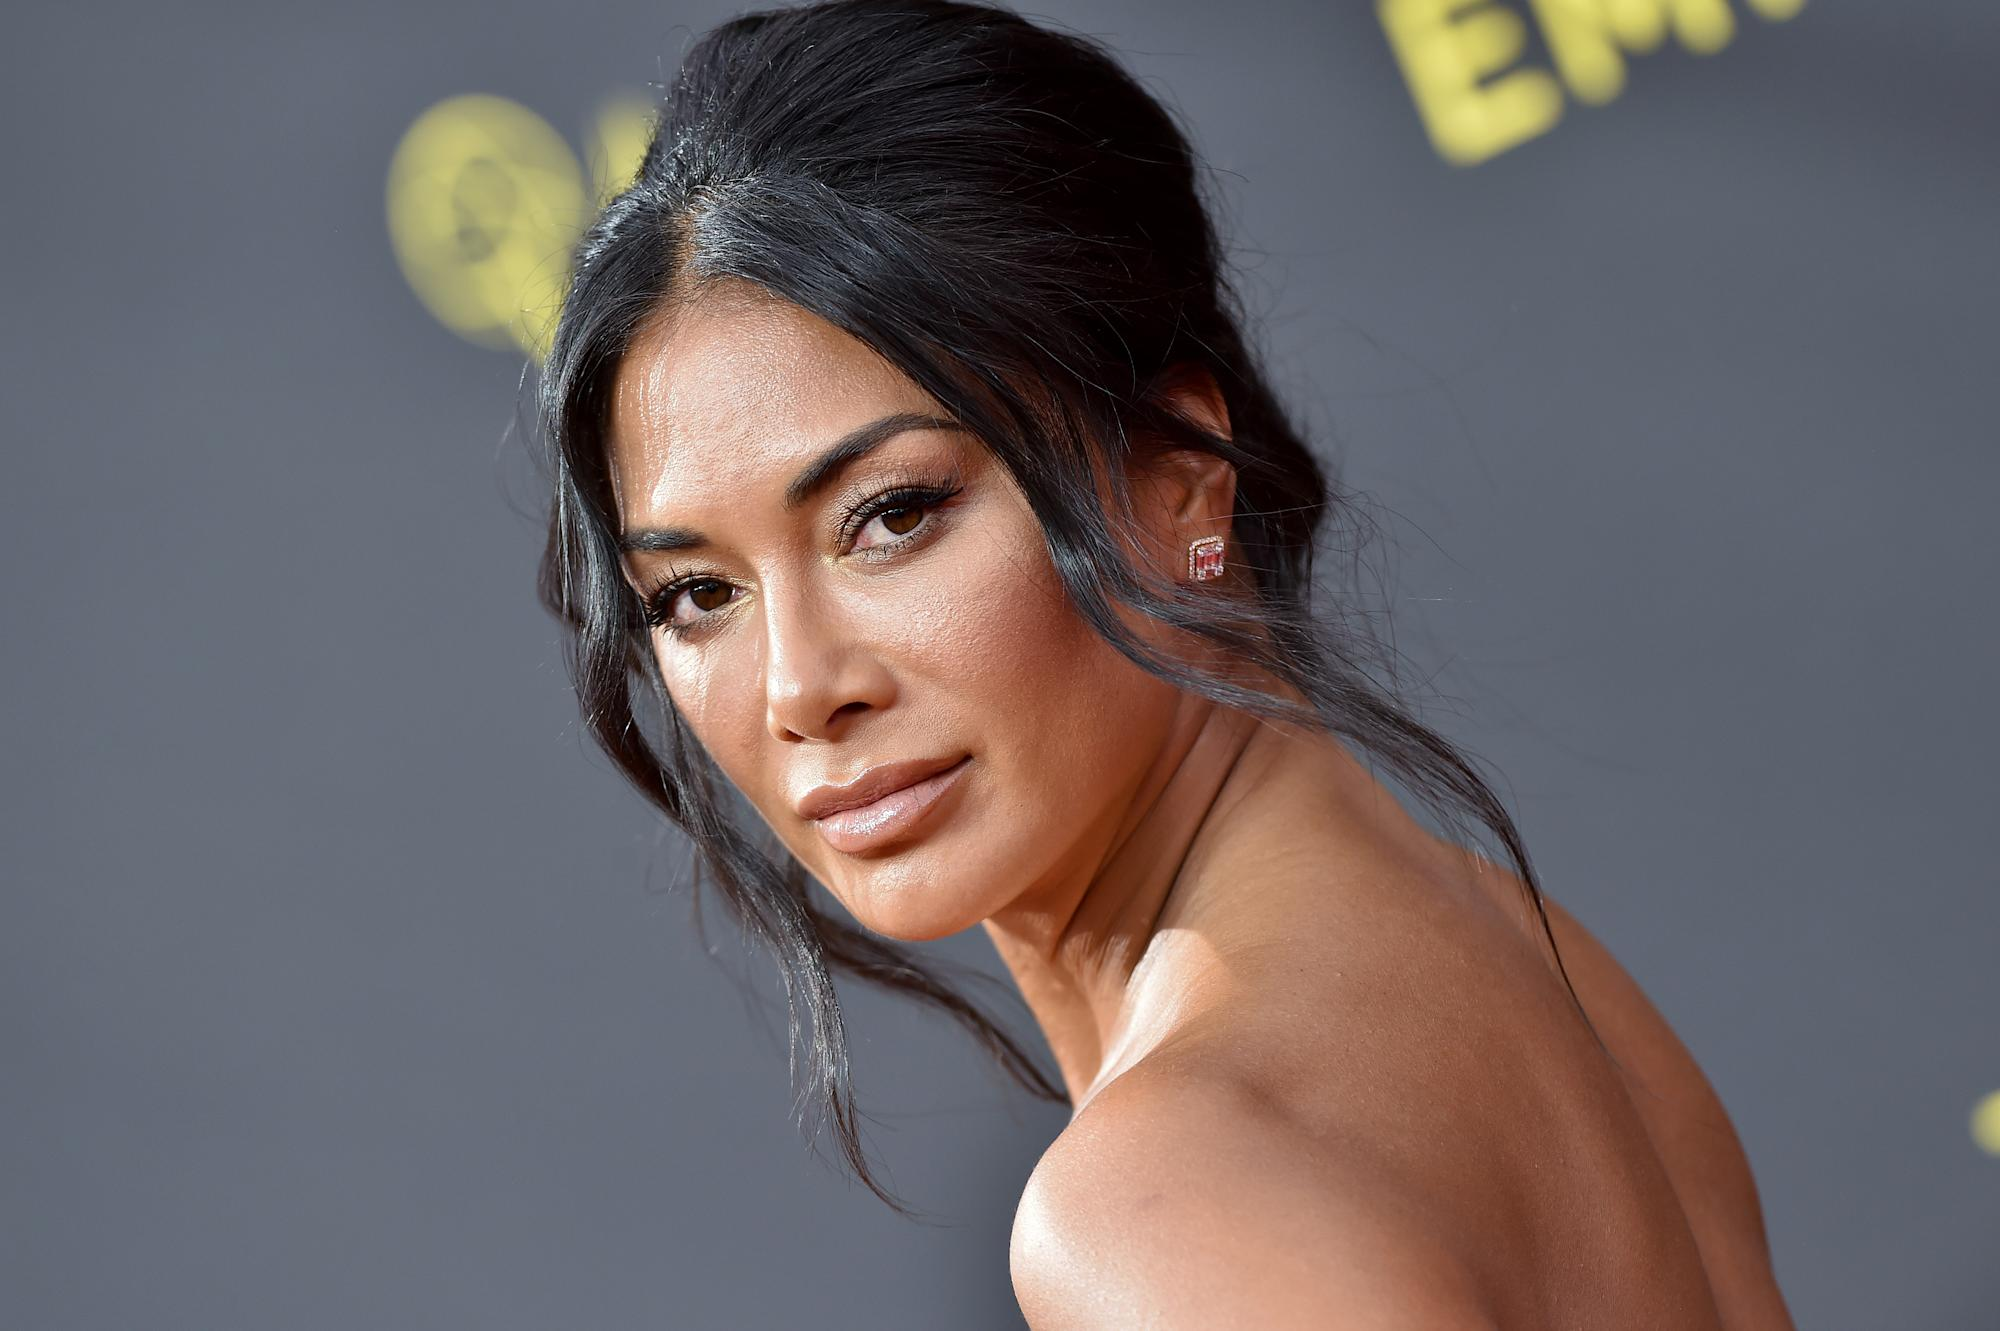 Nicole Scherzinger S Instagram Was Hacked With A Fake Picture Of Her Appearing